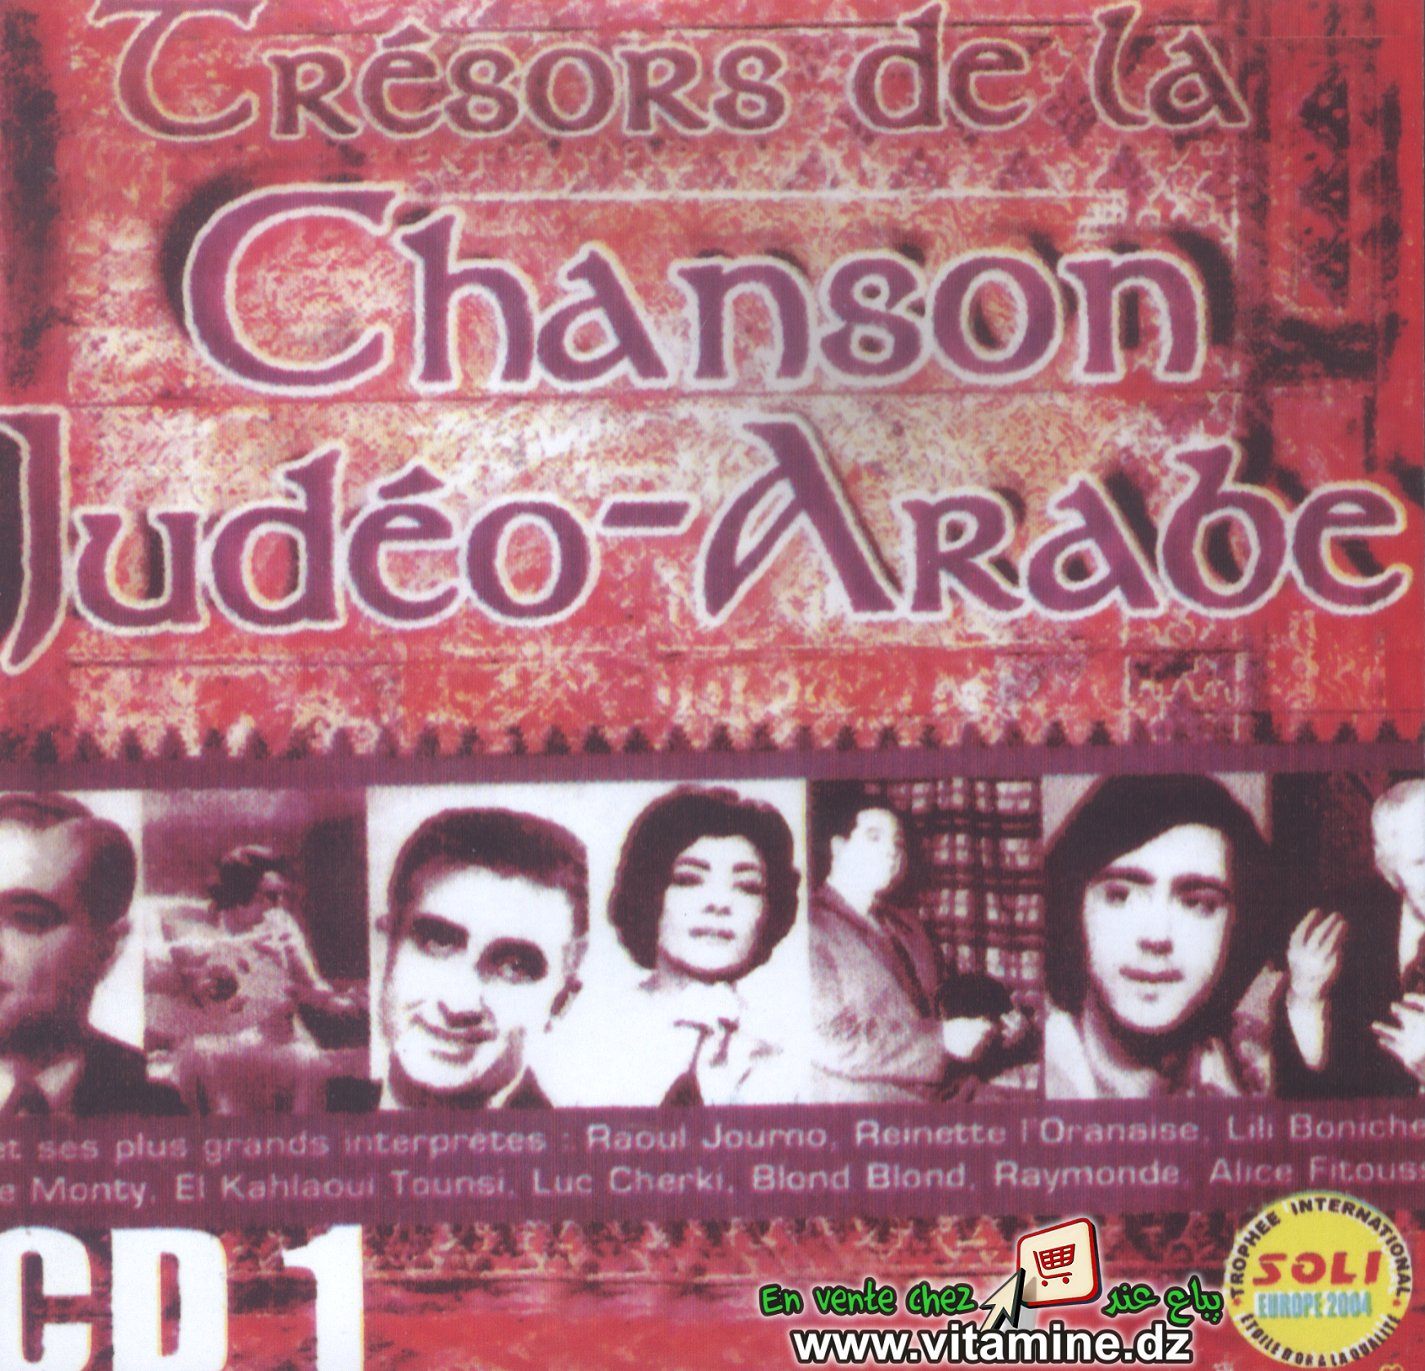 Tresors De La Chanson Judeo-Arabe CD1